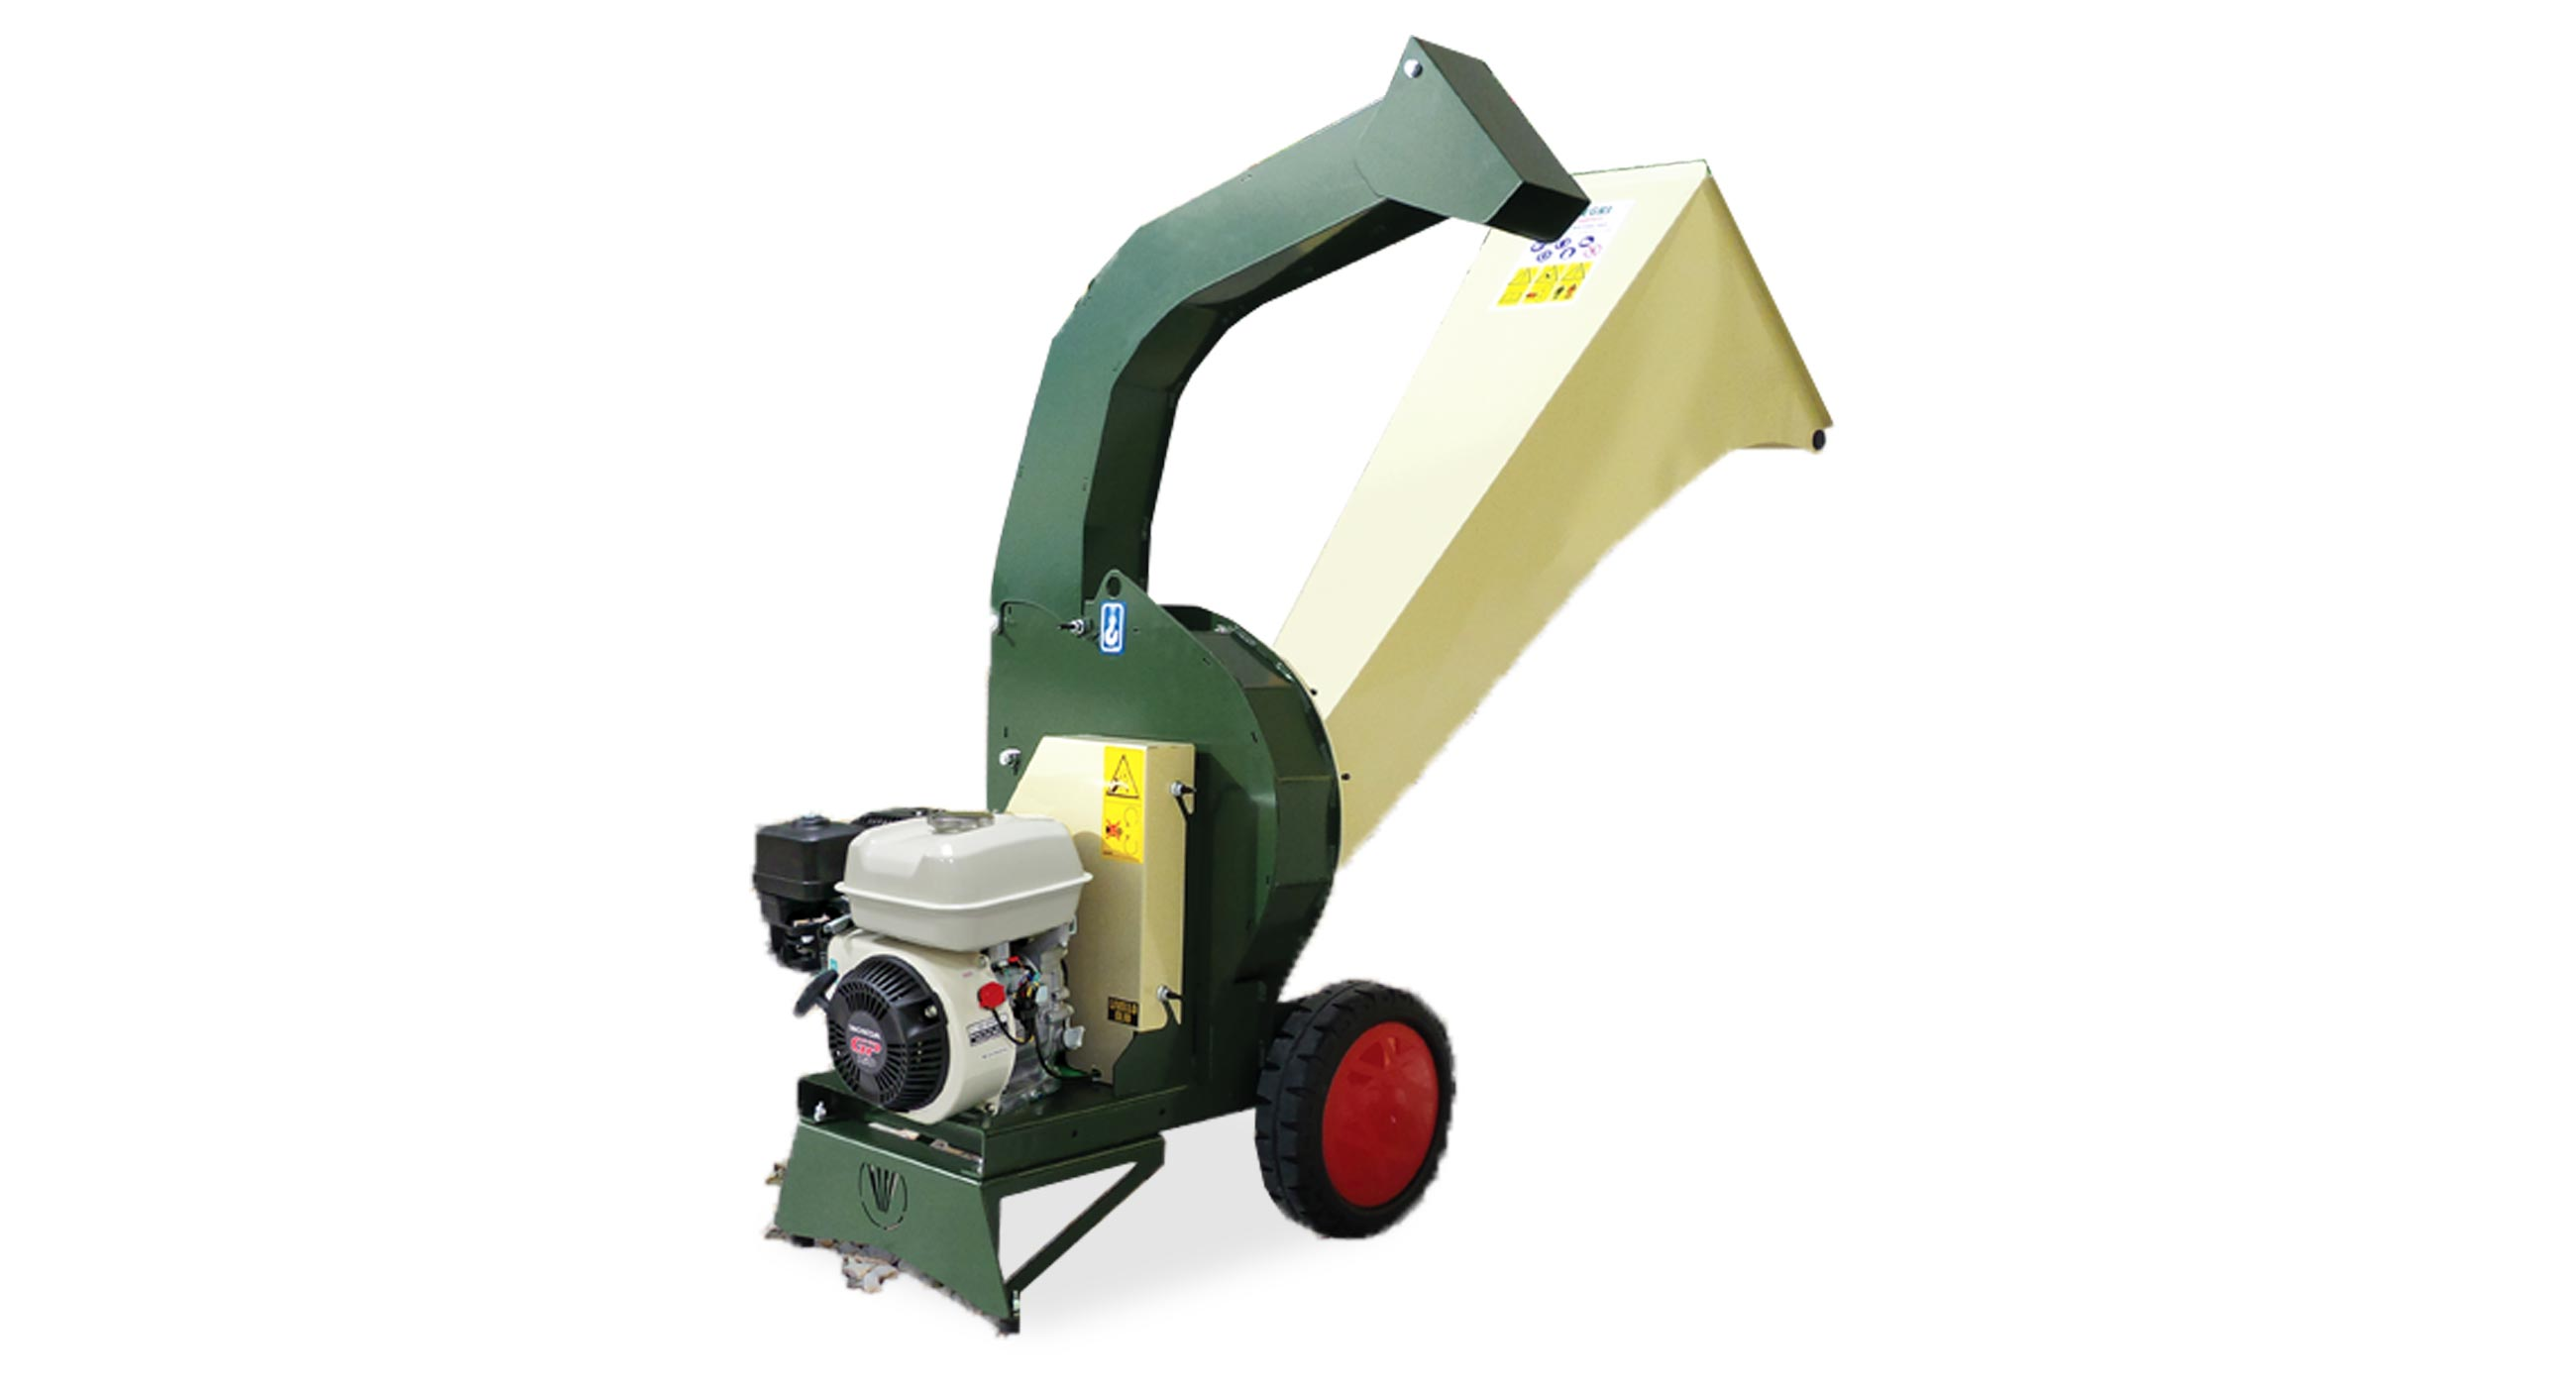 Negri R095 Chipper Mulcher